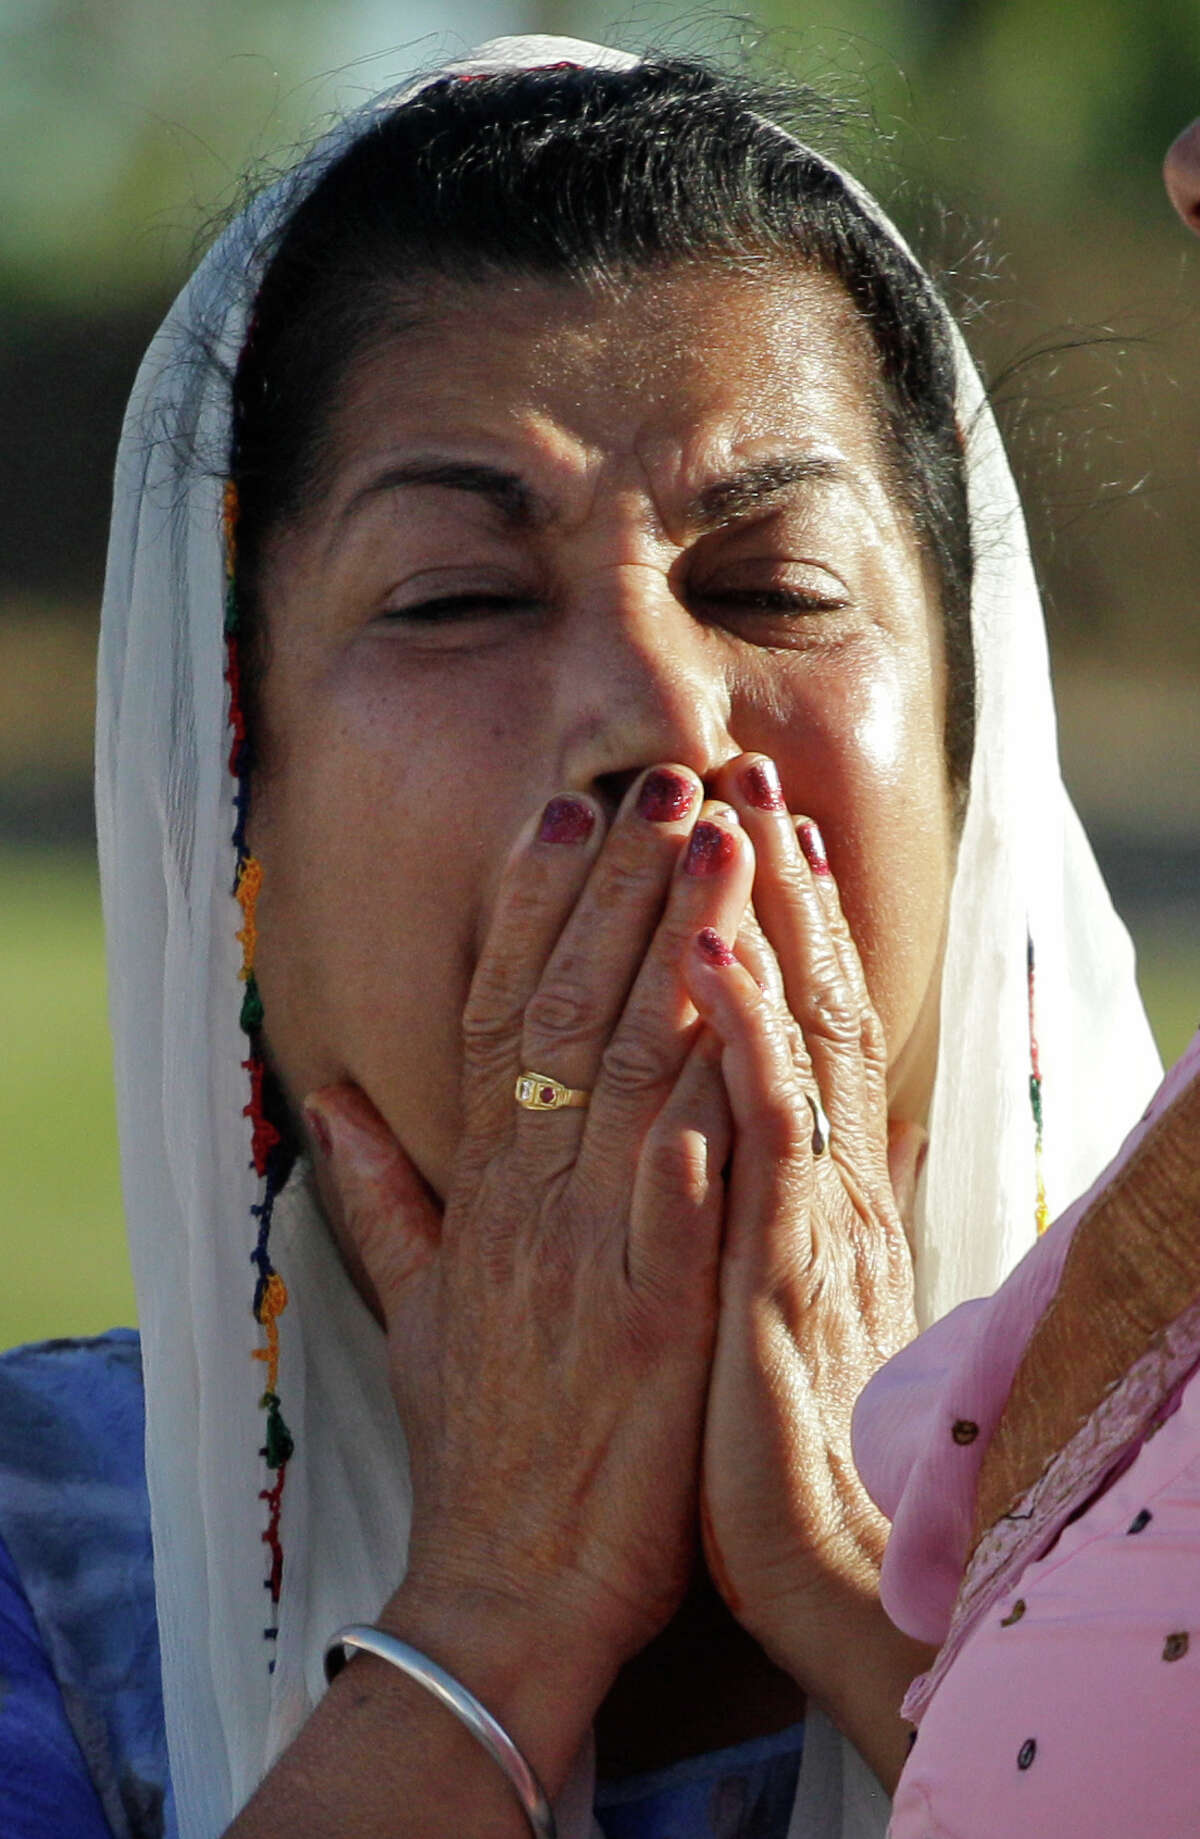 A member of the Sikh Temple of Wisconsin weeps Monday, Aug. 6, 2012, in Oak Creek, Wis., where a gunman killed six people a day earlier, before being killed himself in a shootout with police. Satwant Kaleka, 65, founder and president of the temple, died in the shooting. He was among four priests who died.